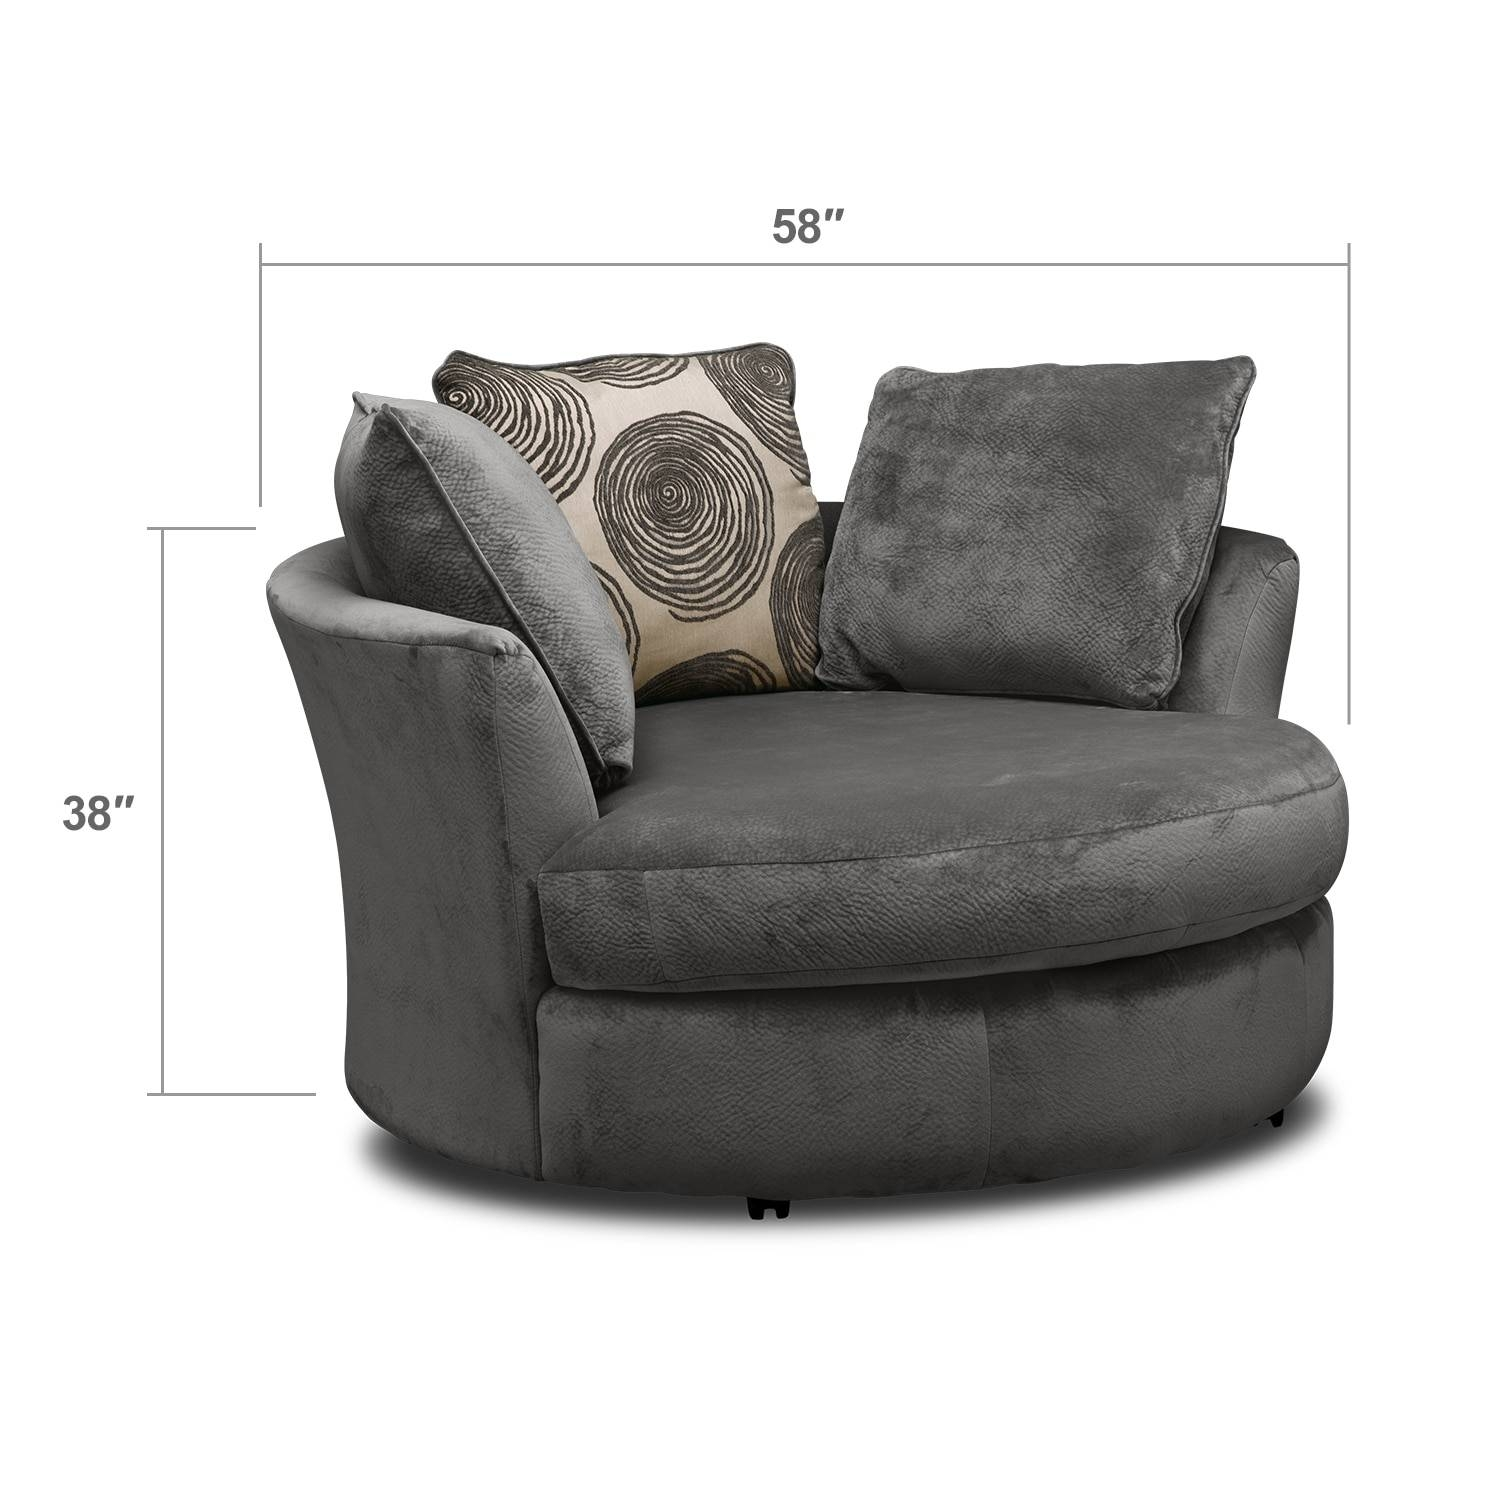 Cordelle Swivel Chair – Gray | American Signature Furniture For Swivel Sofa Chairs (View 9 of 30)